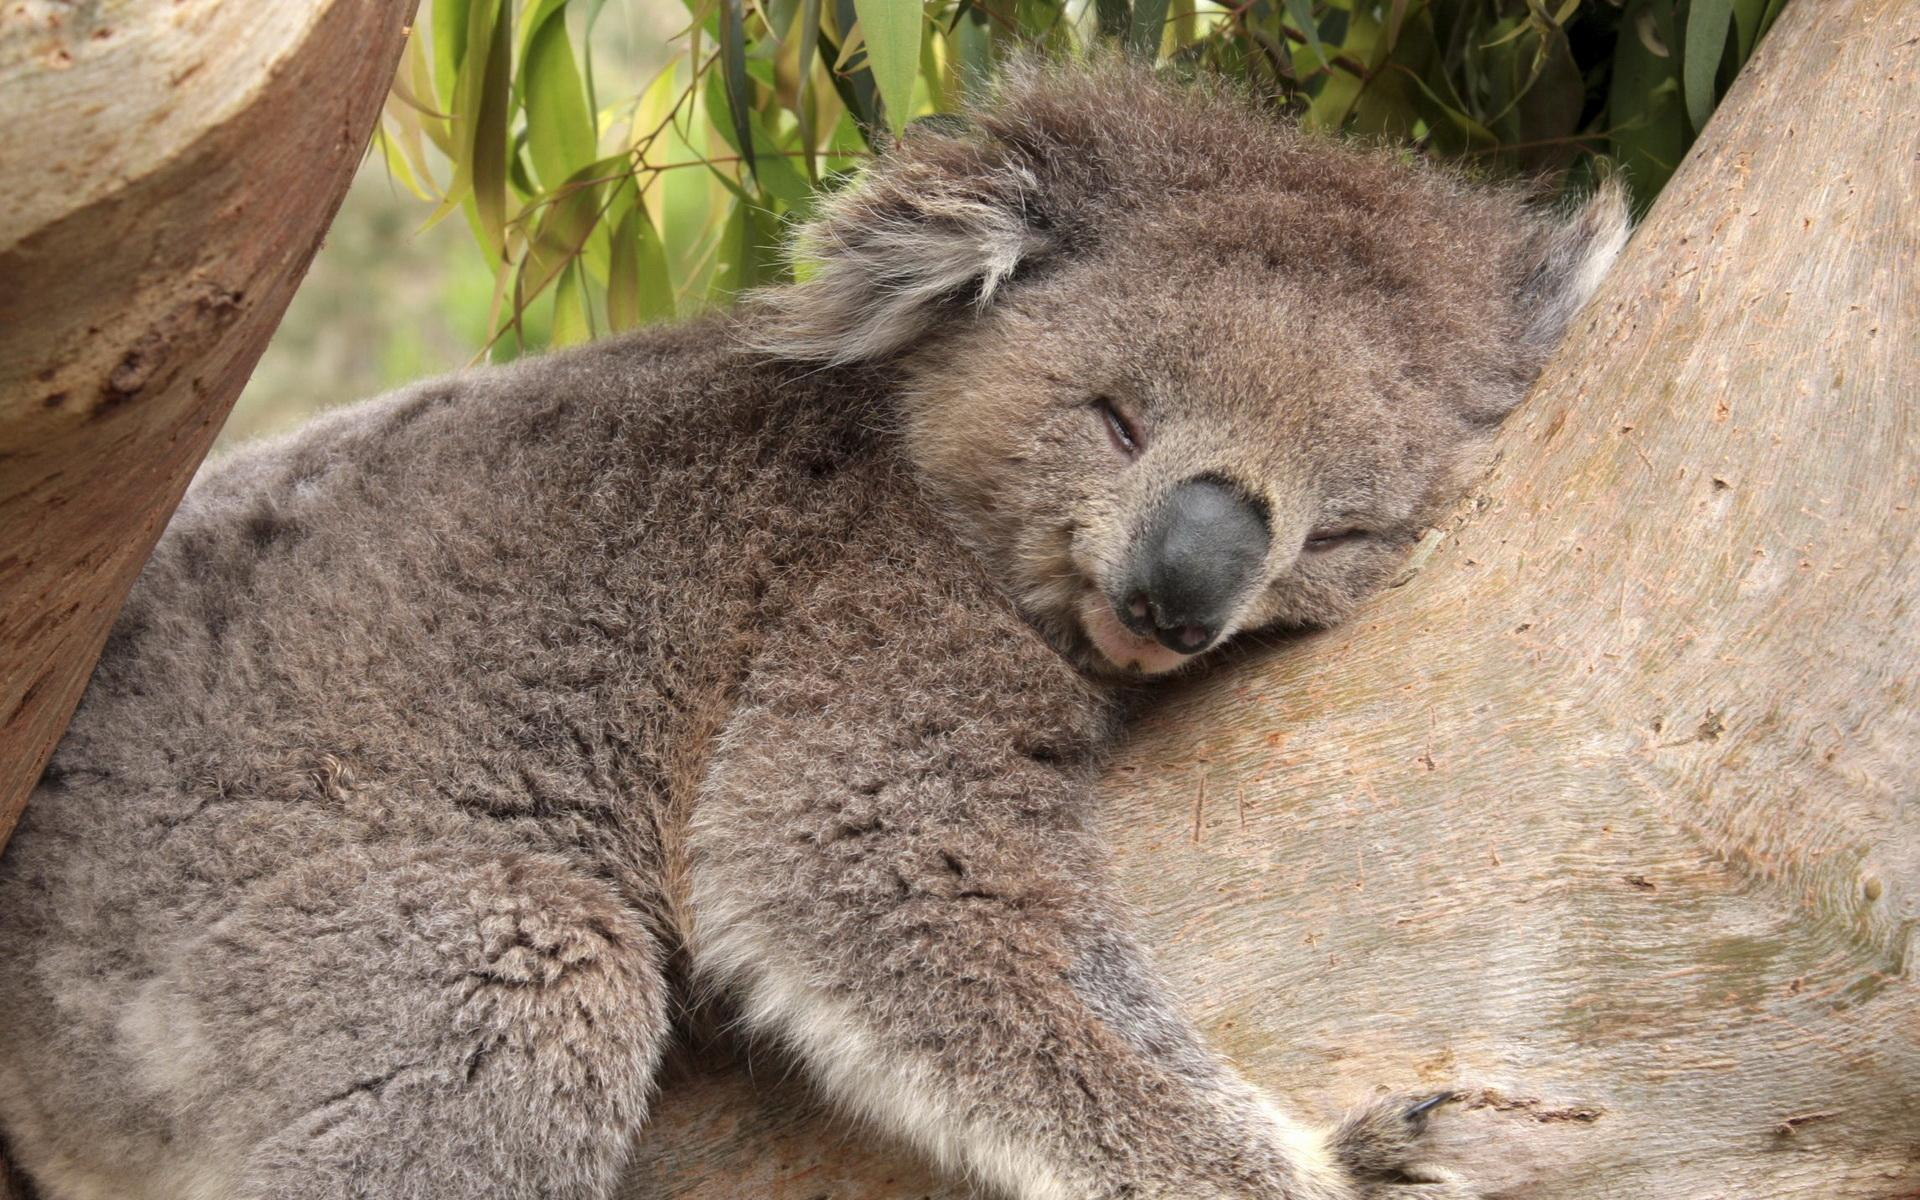 20963 download wallpaper Animals, Koalas screensavers and pictures for free